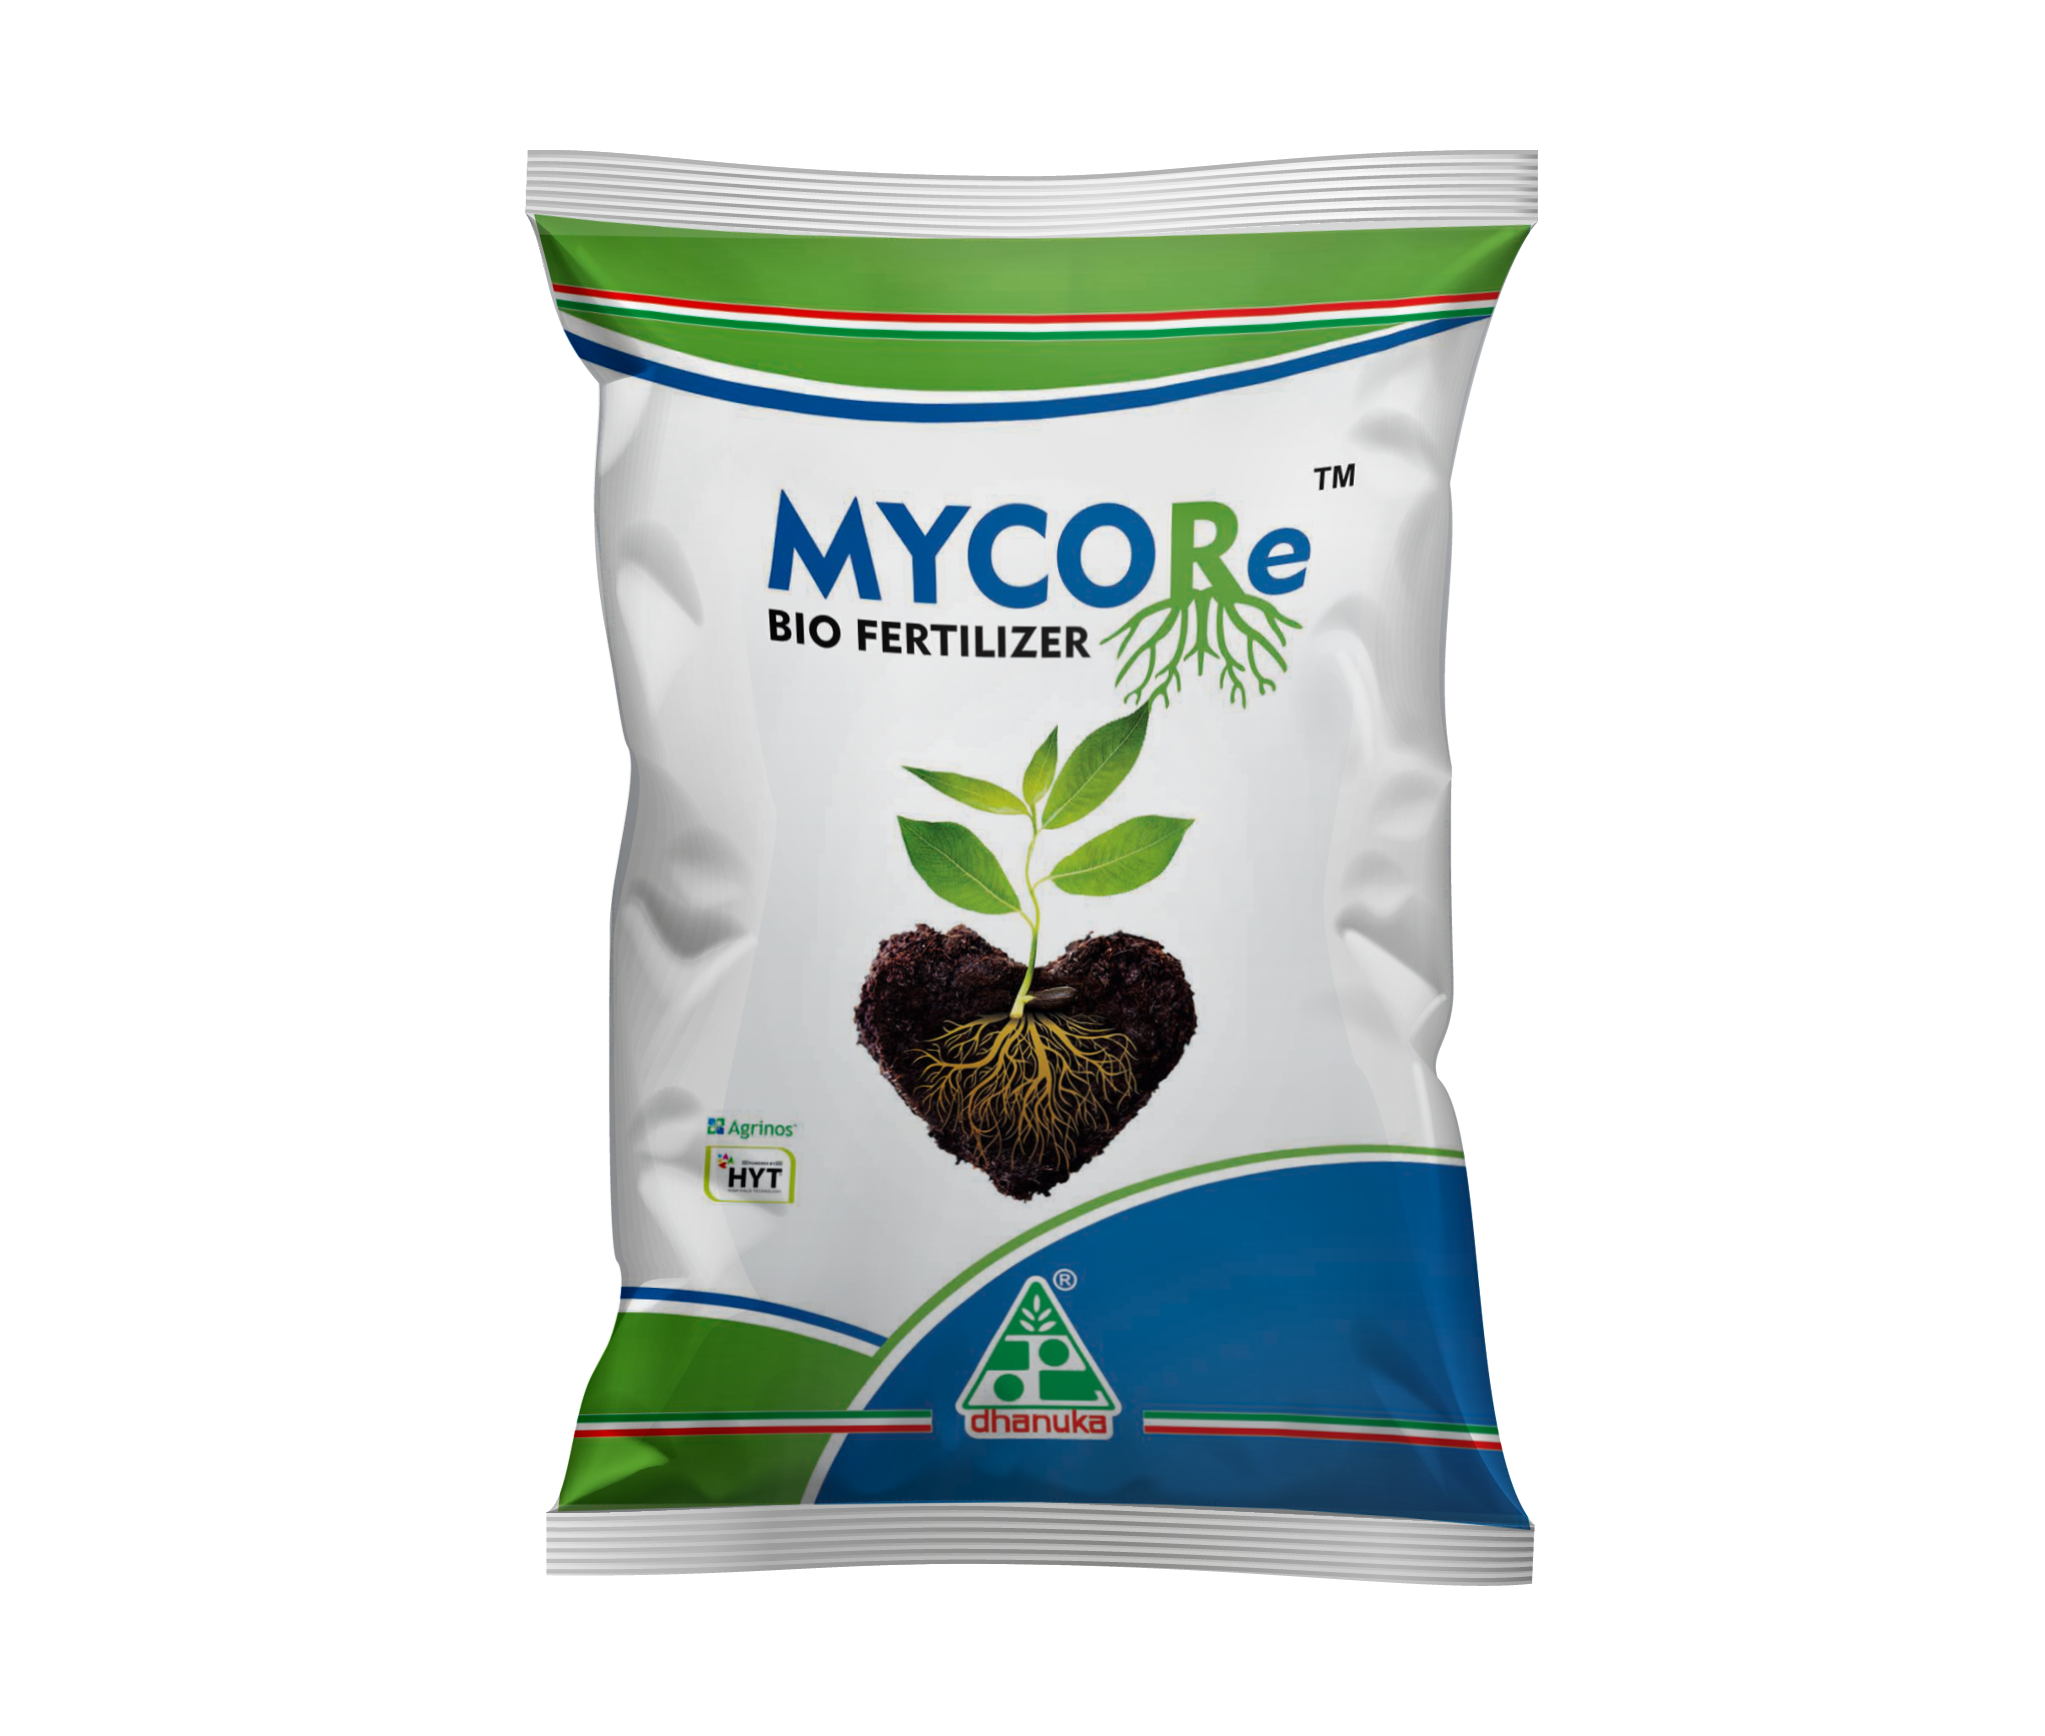 Mycore products